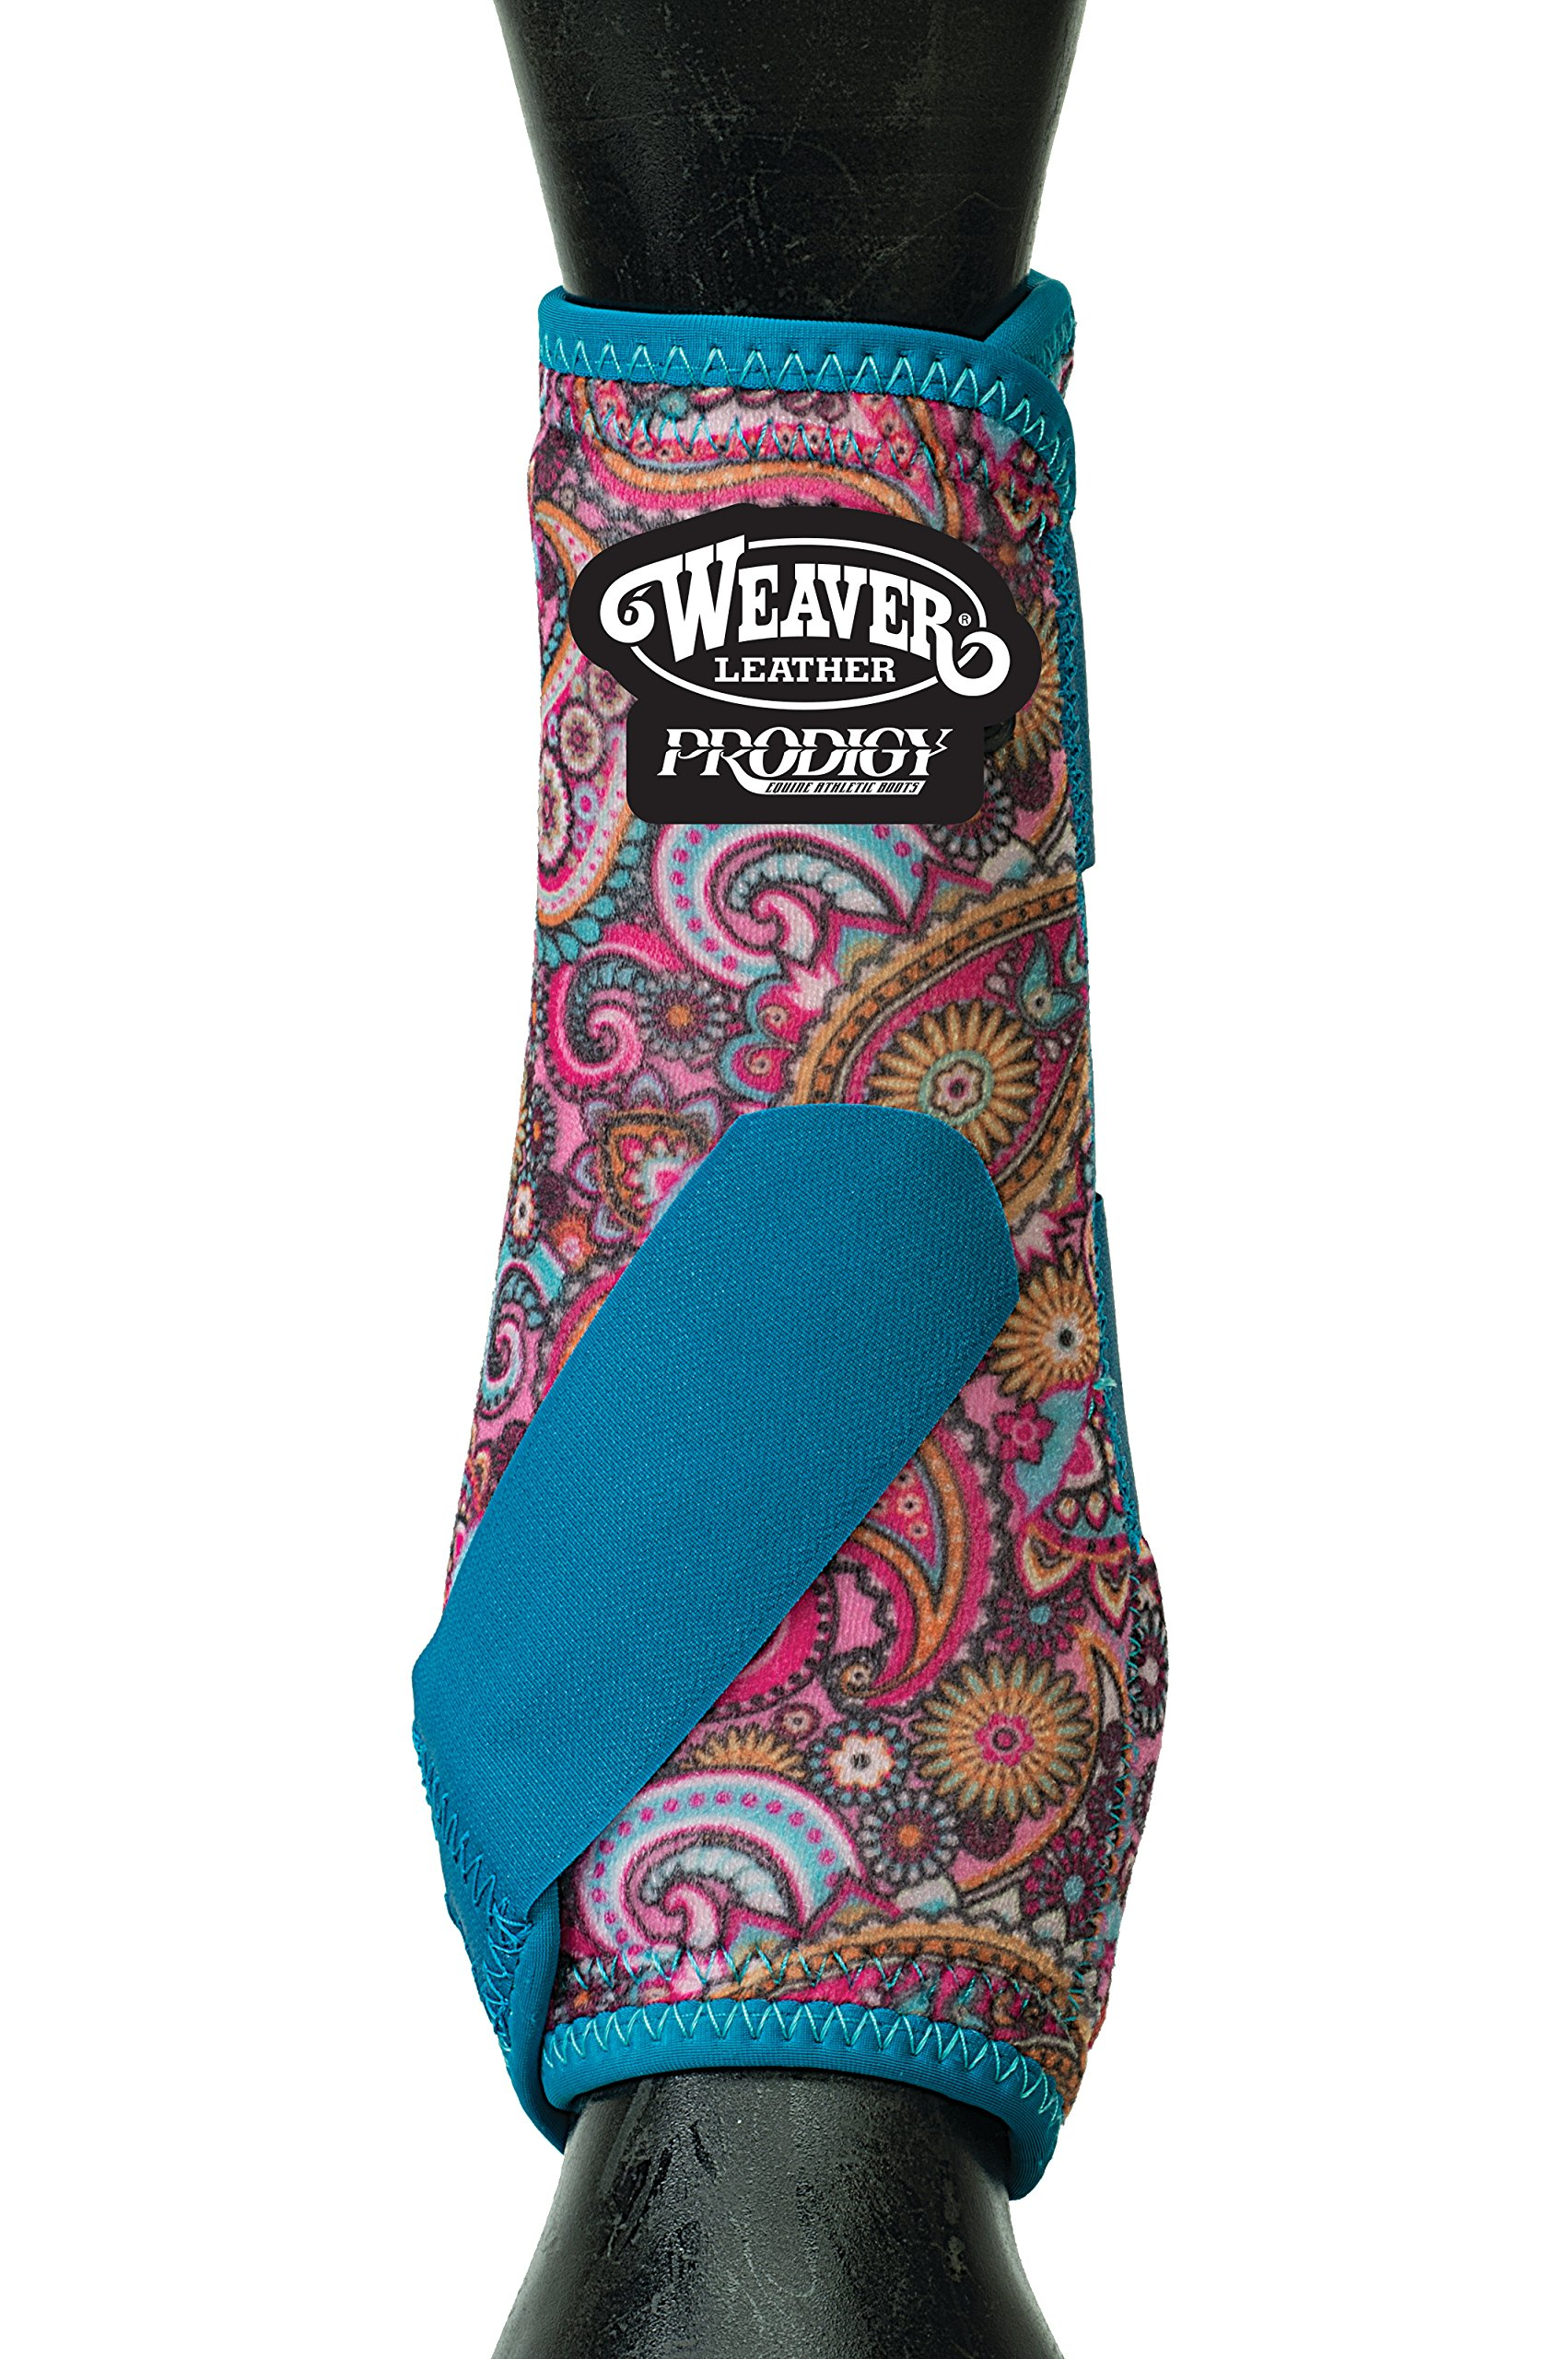 Weaver Leather Prodigy Athletic Boots, Four-Pack, Medium, Paisley